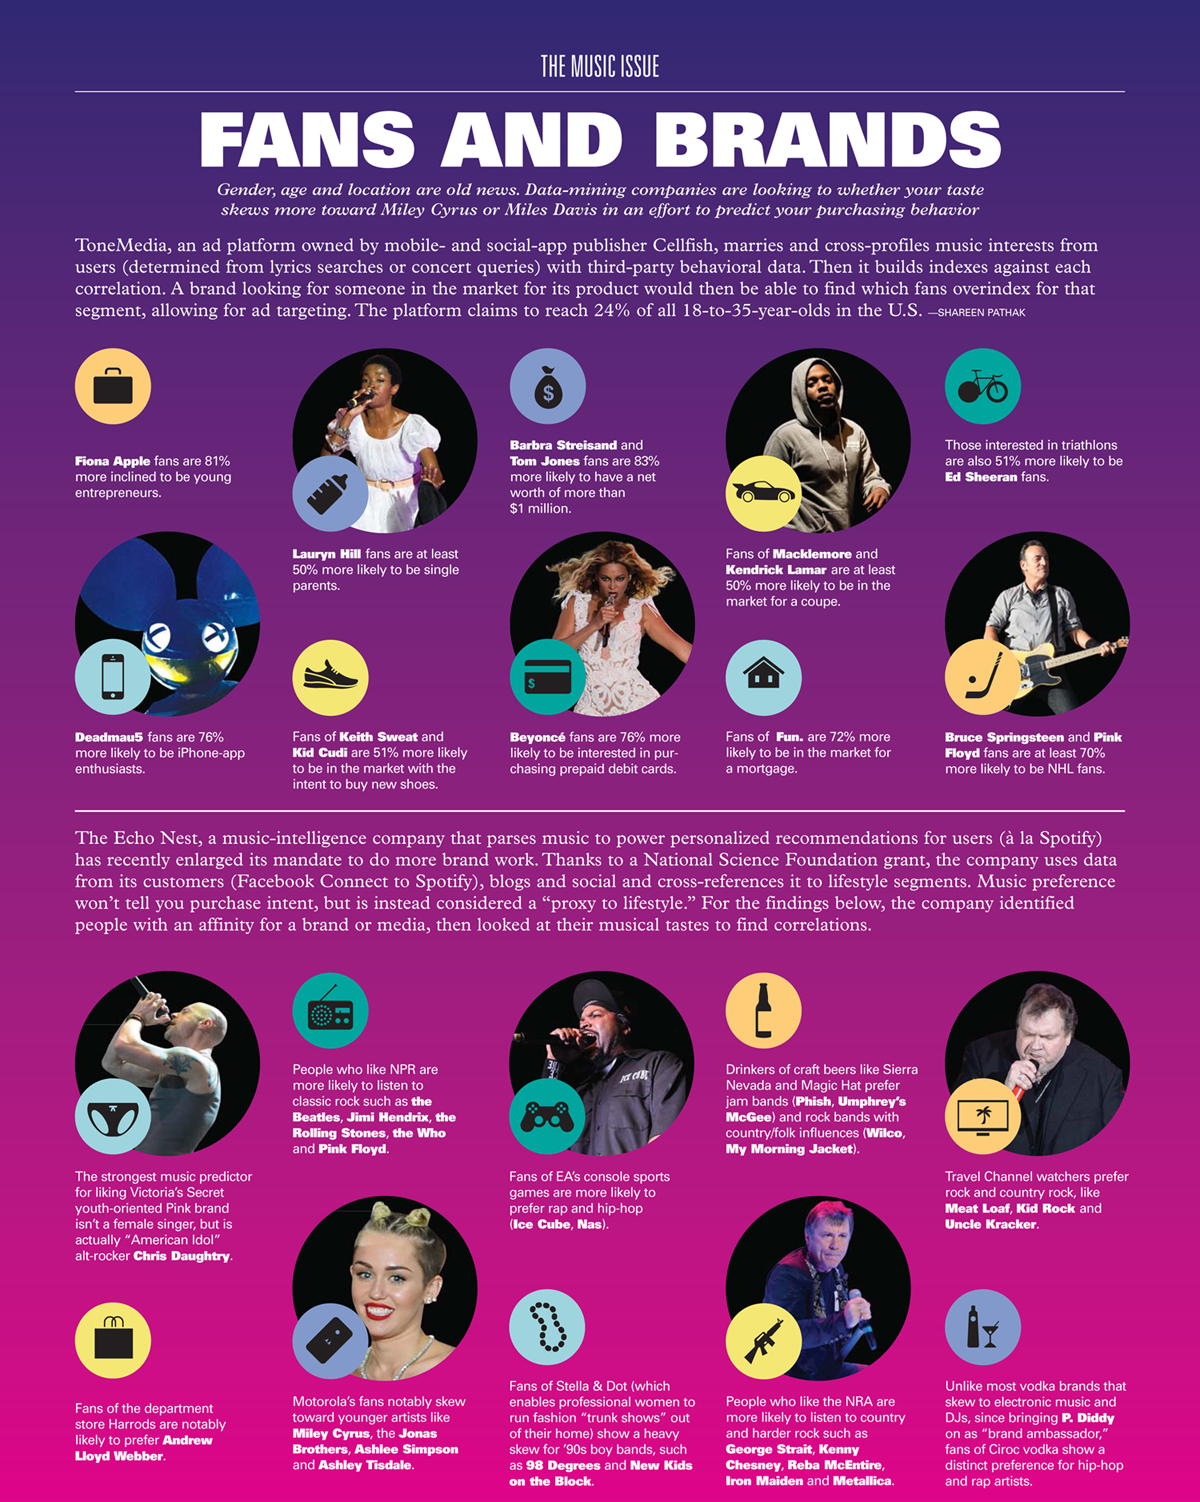 fans and brands infographic